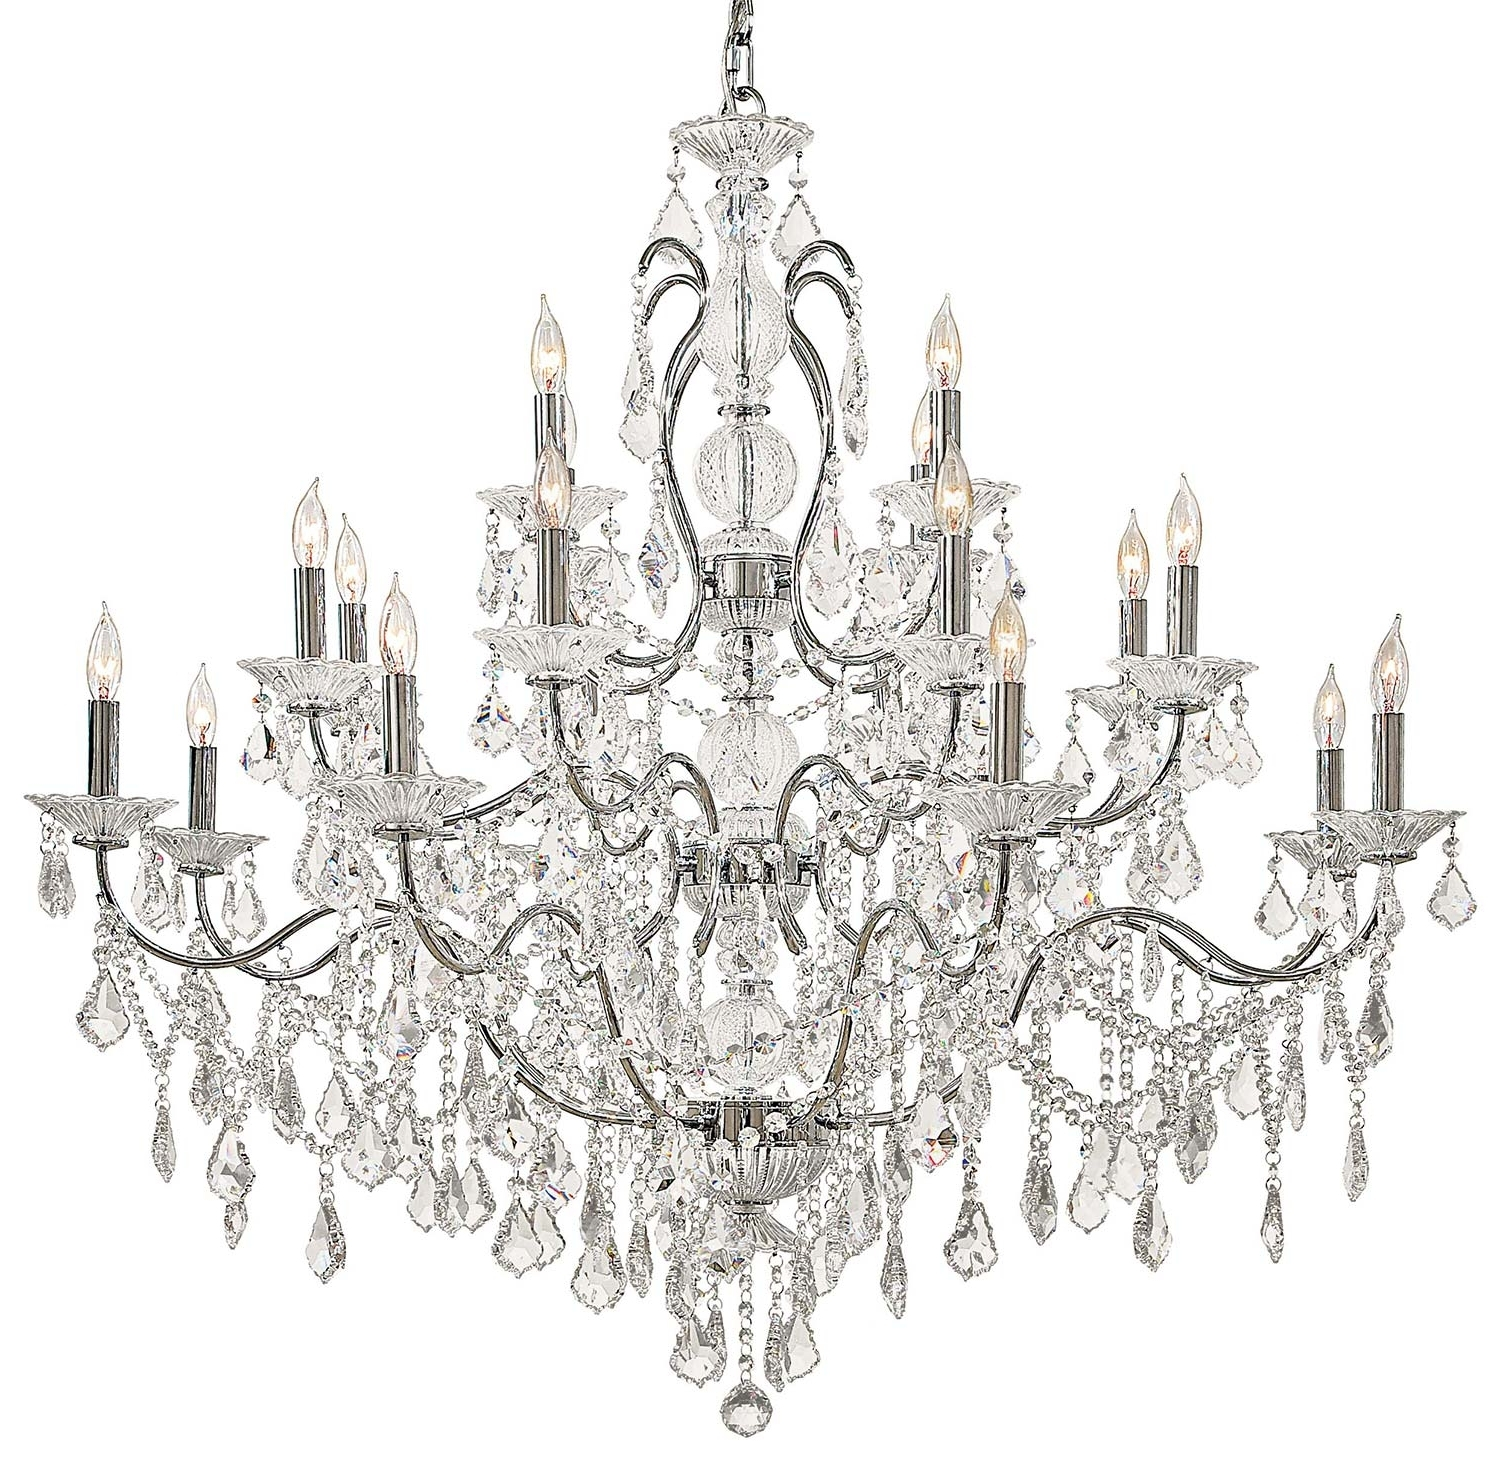 Vintage Style Chandelier in 2018 Light : Chandelier Crystals Vintage Php White Dining Crystal Room